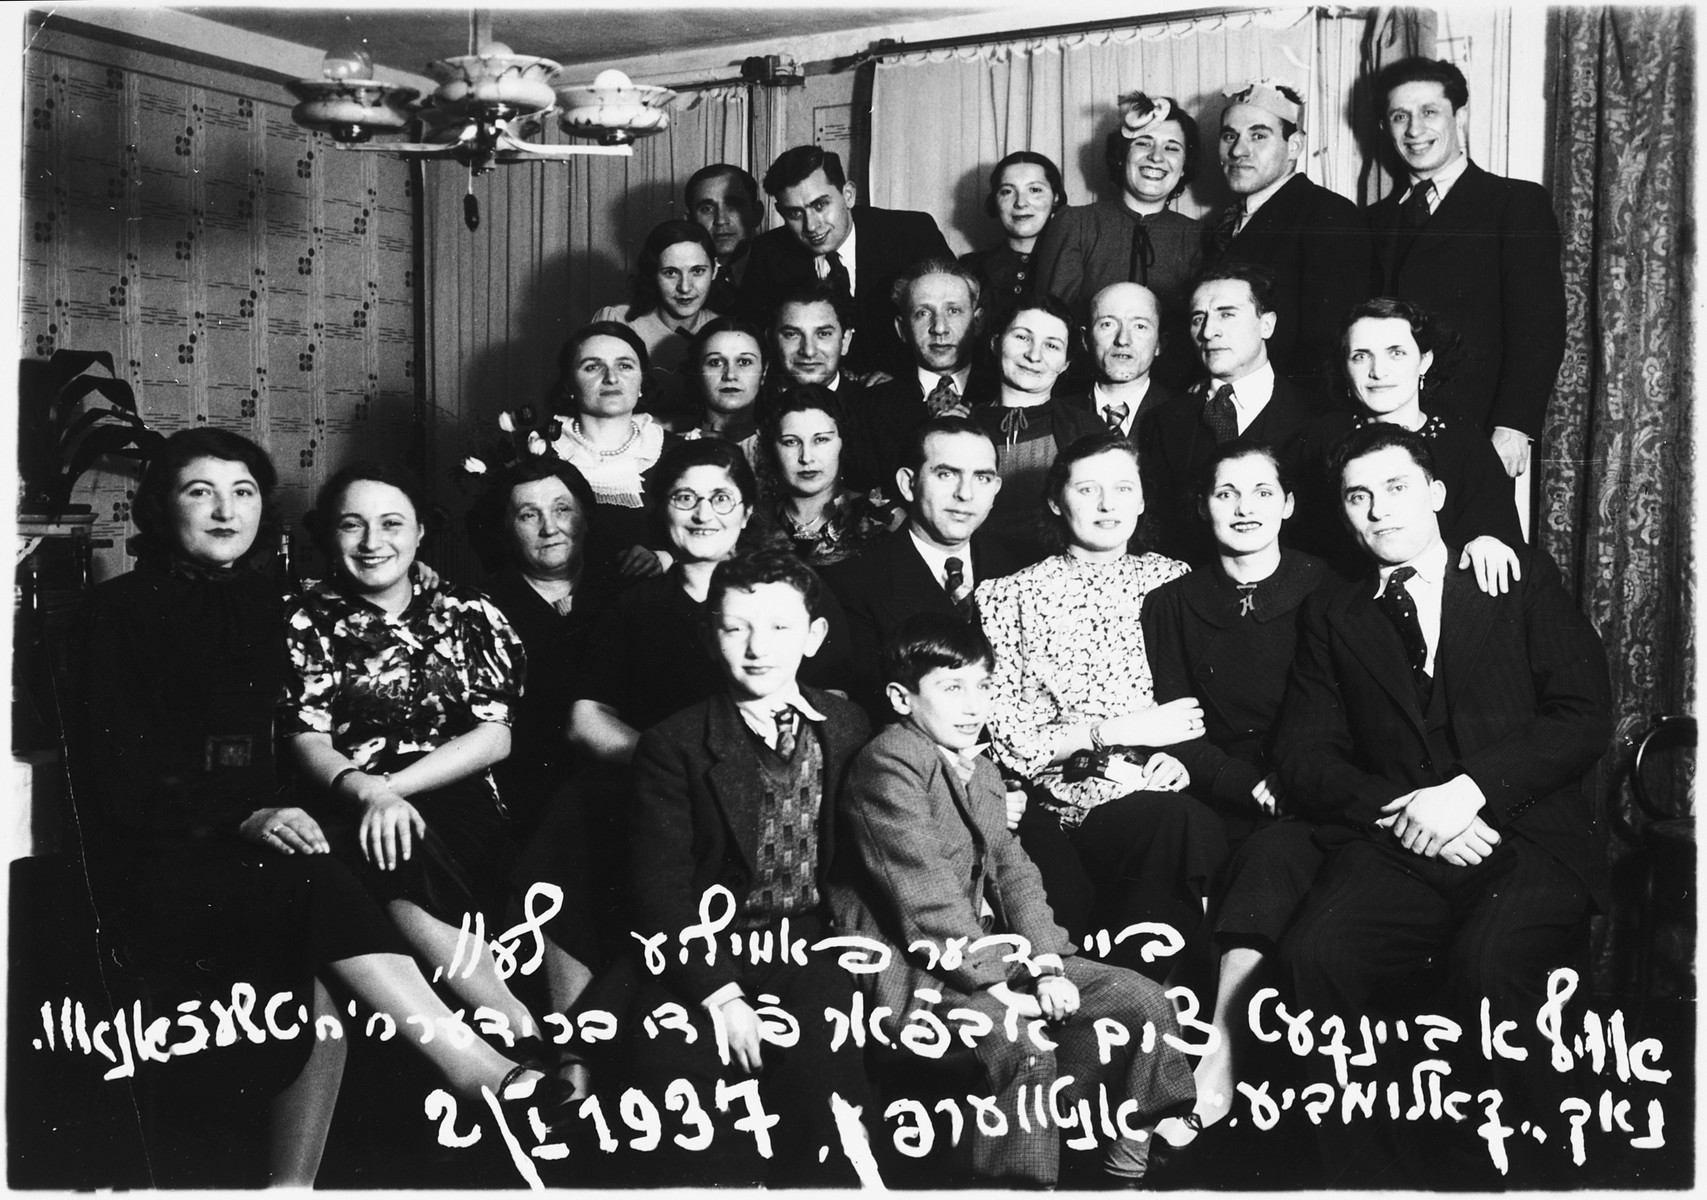 Group portrait of family and friends attending a banquet to mark the departure of the Ciechanow brothers, Alex and Adolf, for Colombia.  Among those pictured is Alex Ciechanow (bottom, right), Leah Ciechanow (behind Alex), Rochelle Ciechanow (front row, third from the right), Monek Lublin (front row, fourth from the right), Jackie Ciechanow (boy in the front row, center), Mendel Olszyn (second row from the top, center).  Also pictured are Estera and Adolf Ciechanow and Chana (Ciechanow) Olszyn.